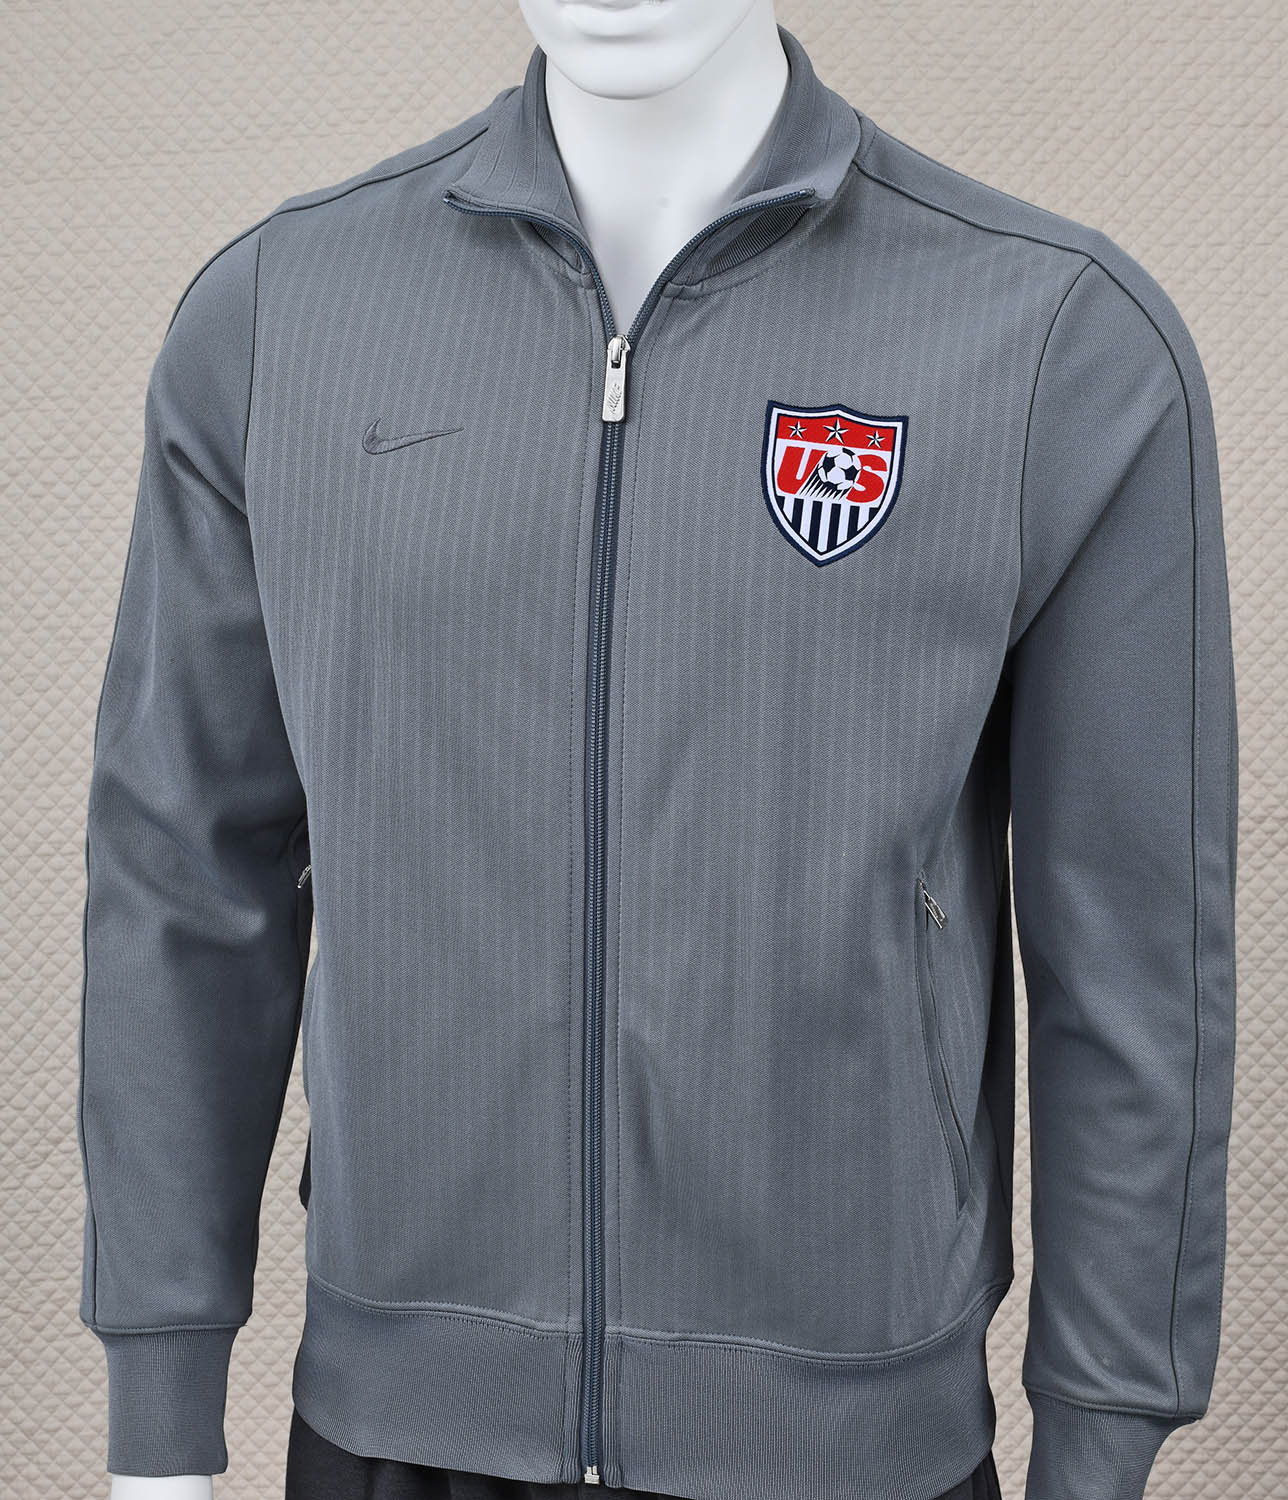 Nike US Soccer Gray Jacket